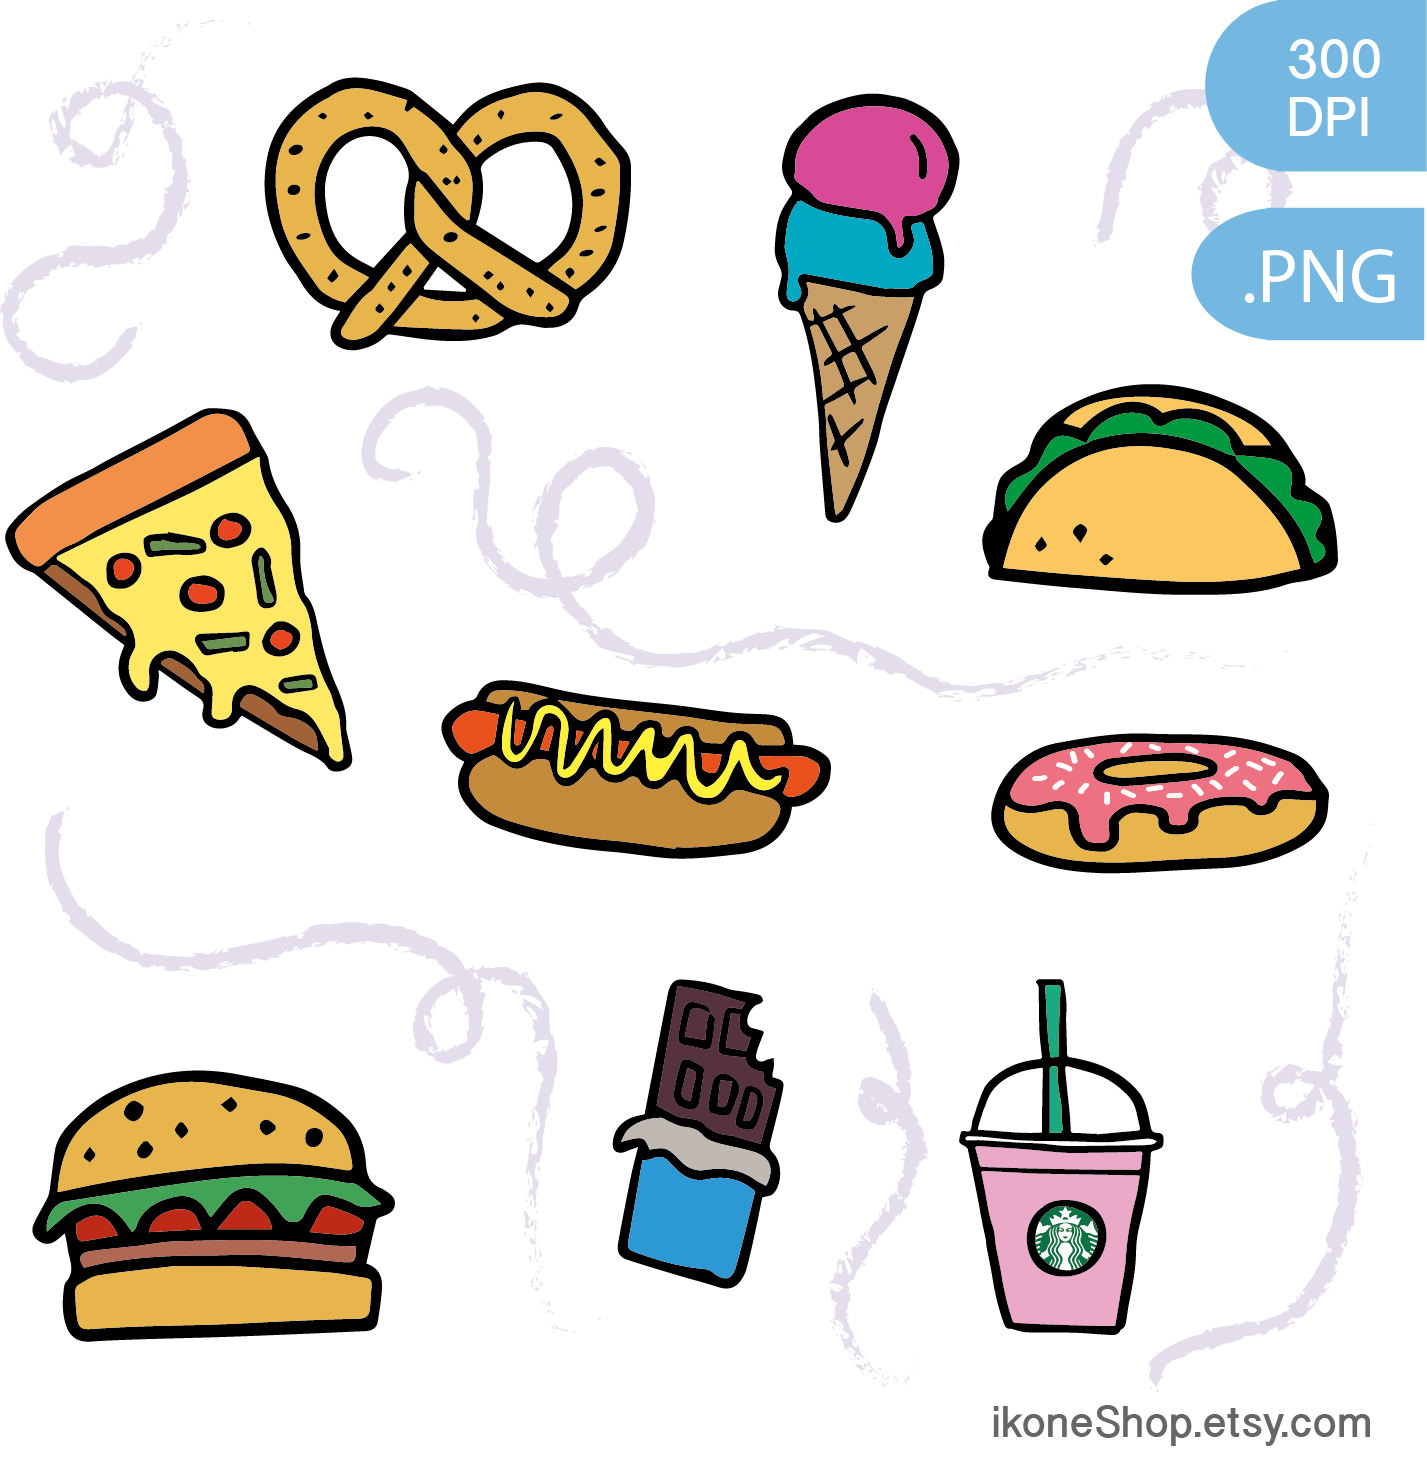 Clipart Of Food Items at GetDrawings.com.